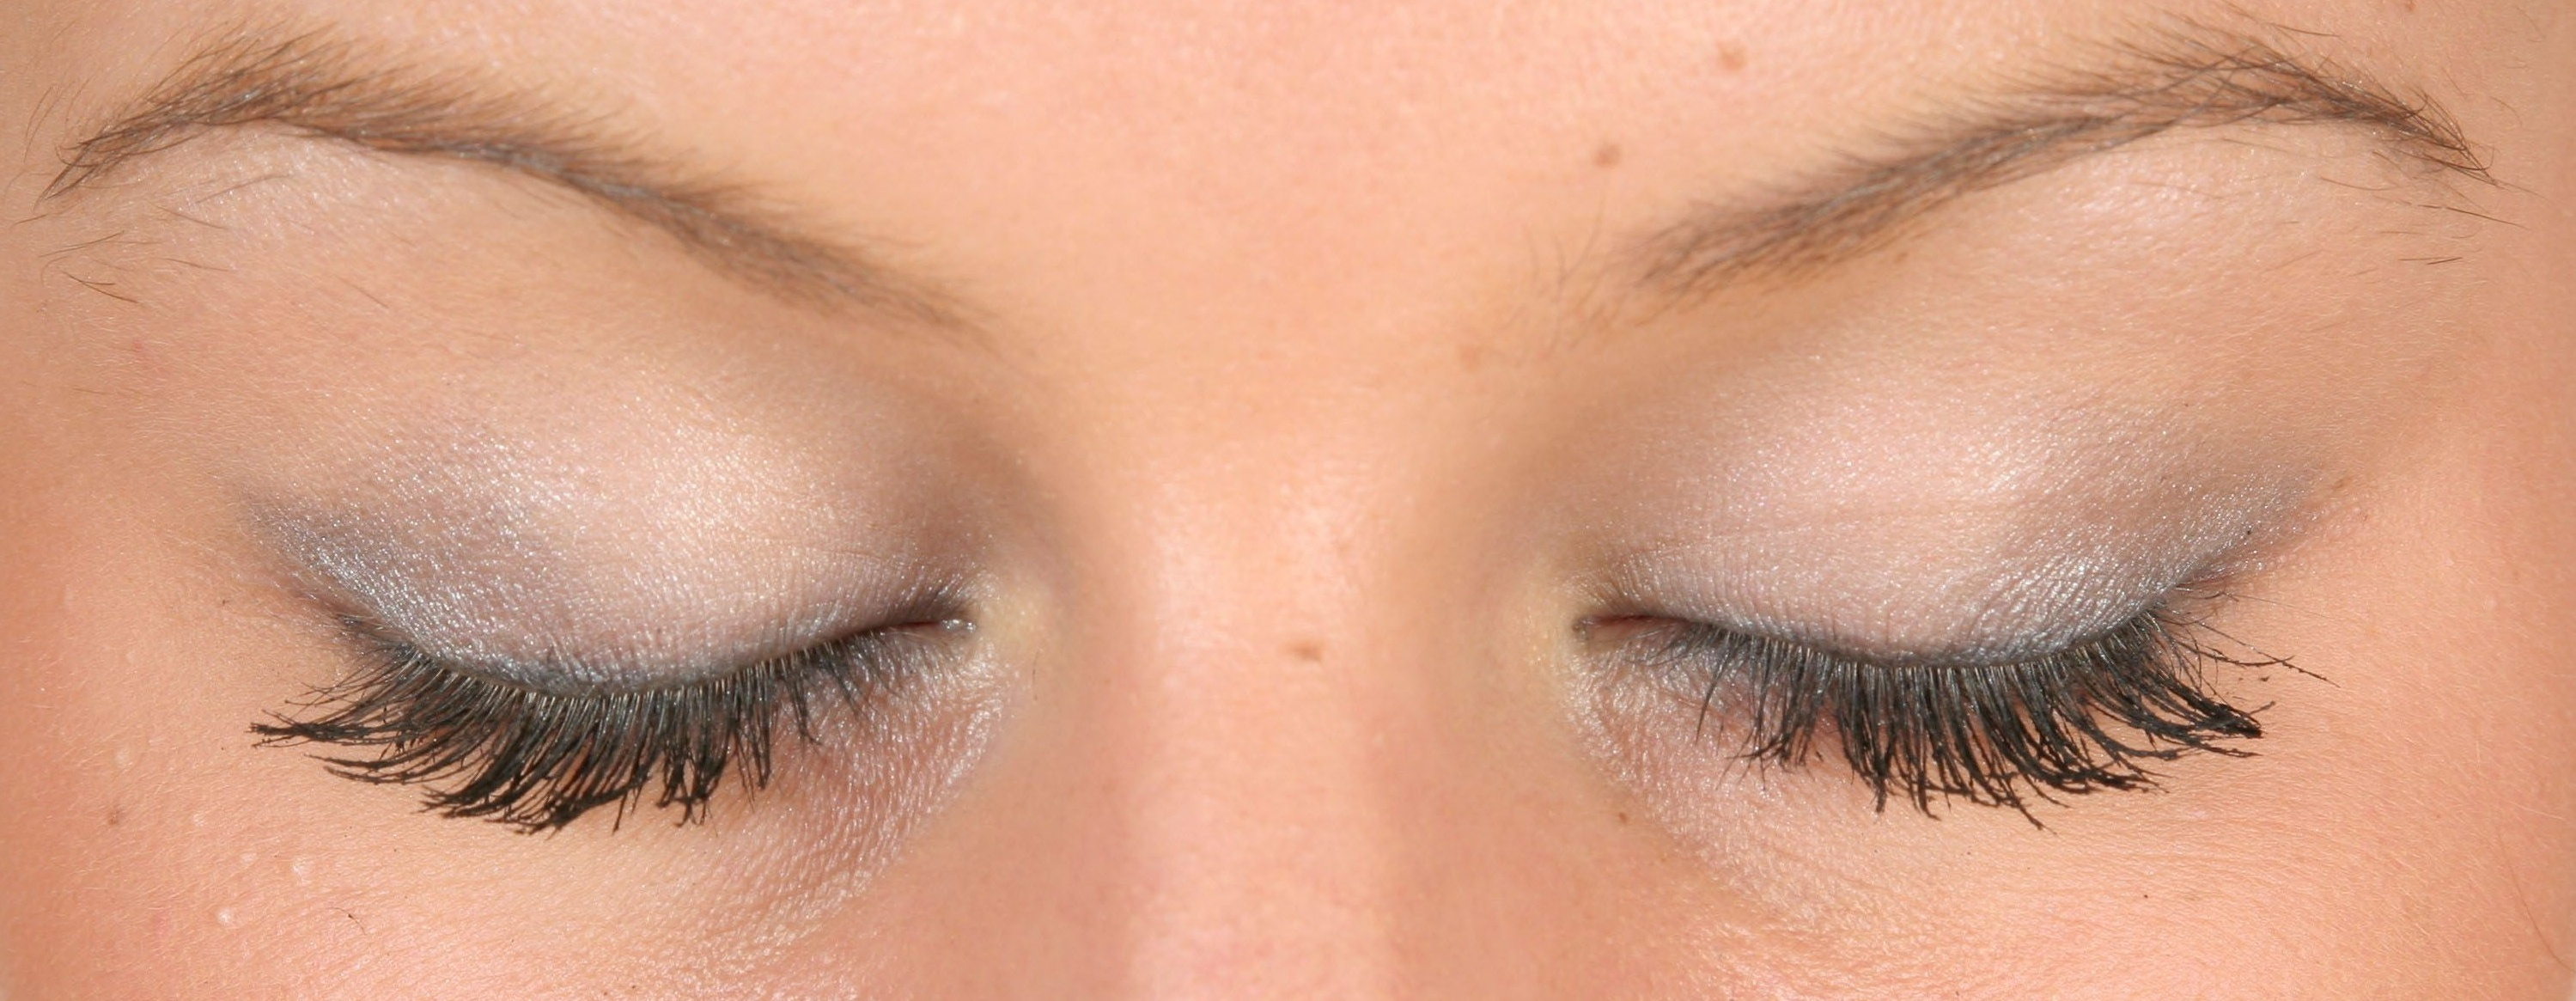 Change your look with Eyelash Tinting and Eyebrow Tinting at ...